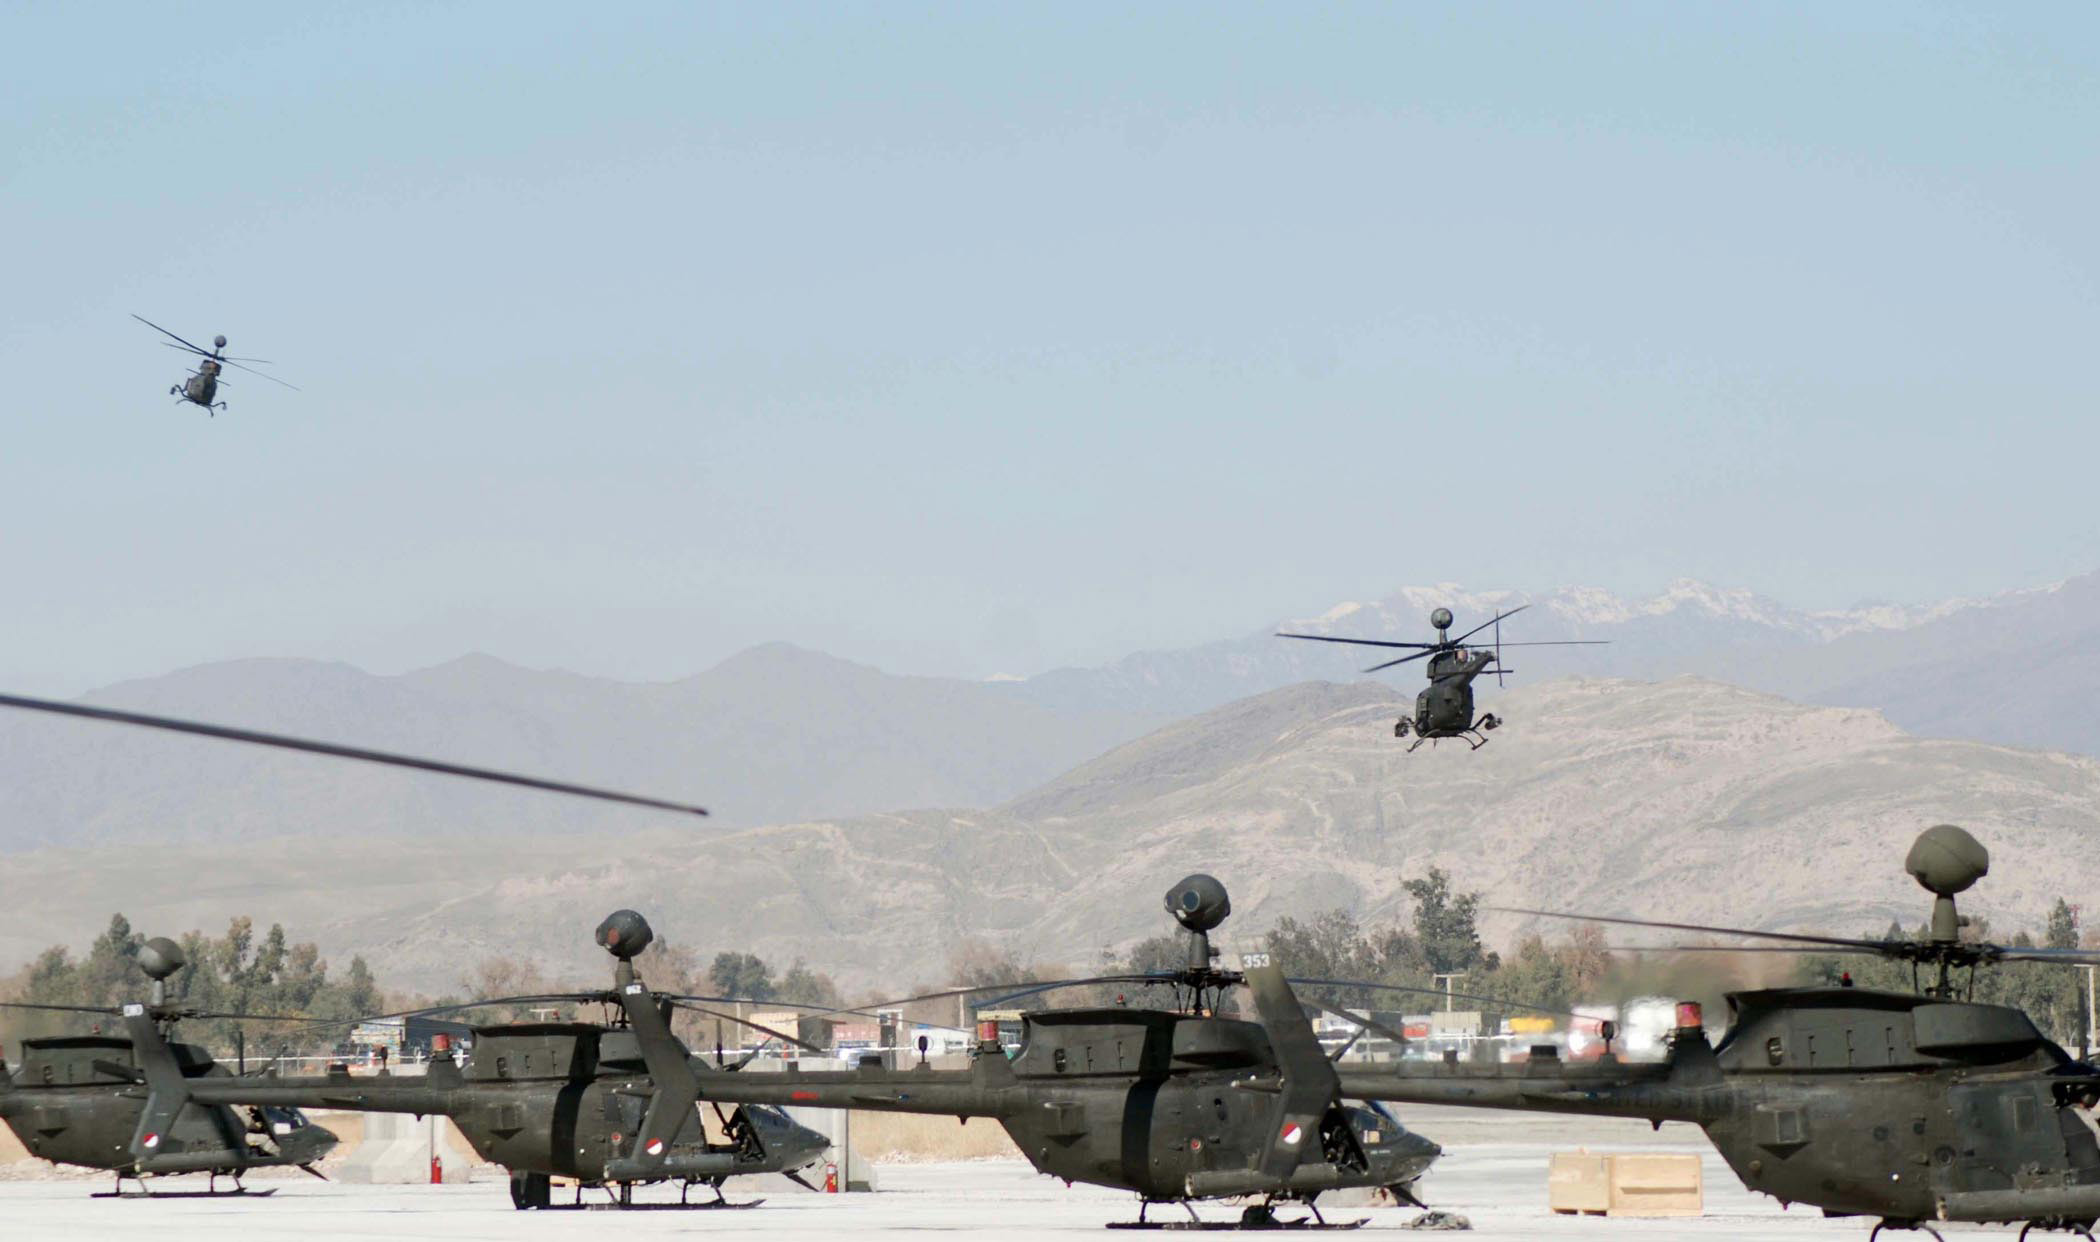 army helicopters with File Kiowa Helicopters At Jalalabad Airfield  Afghanistan on H21 likewise Id149452 likewise Watch furthermore Detail as well Helicopter Aircraft Military Army Transport USA  2.